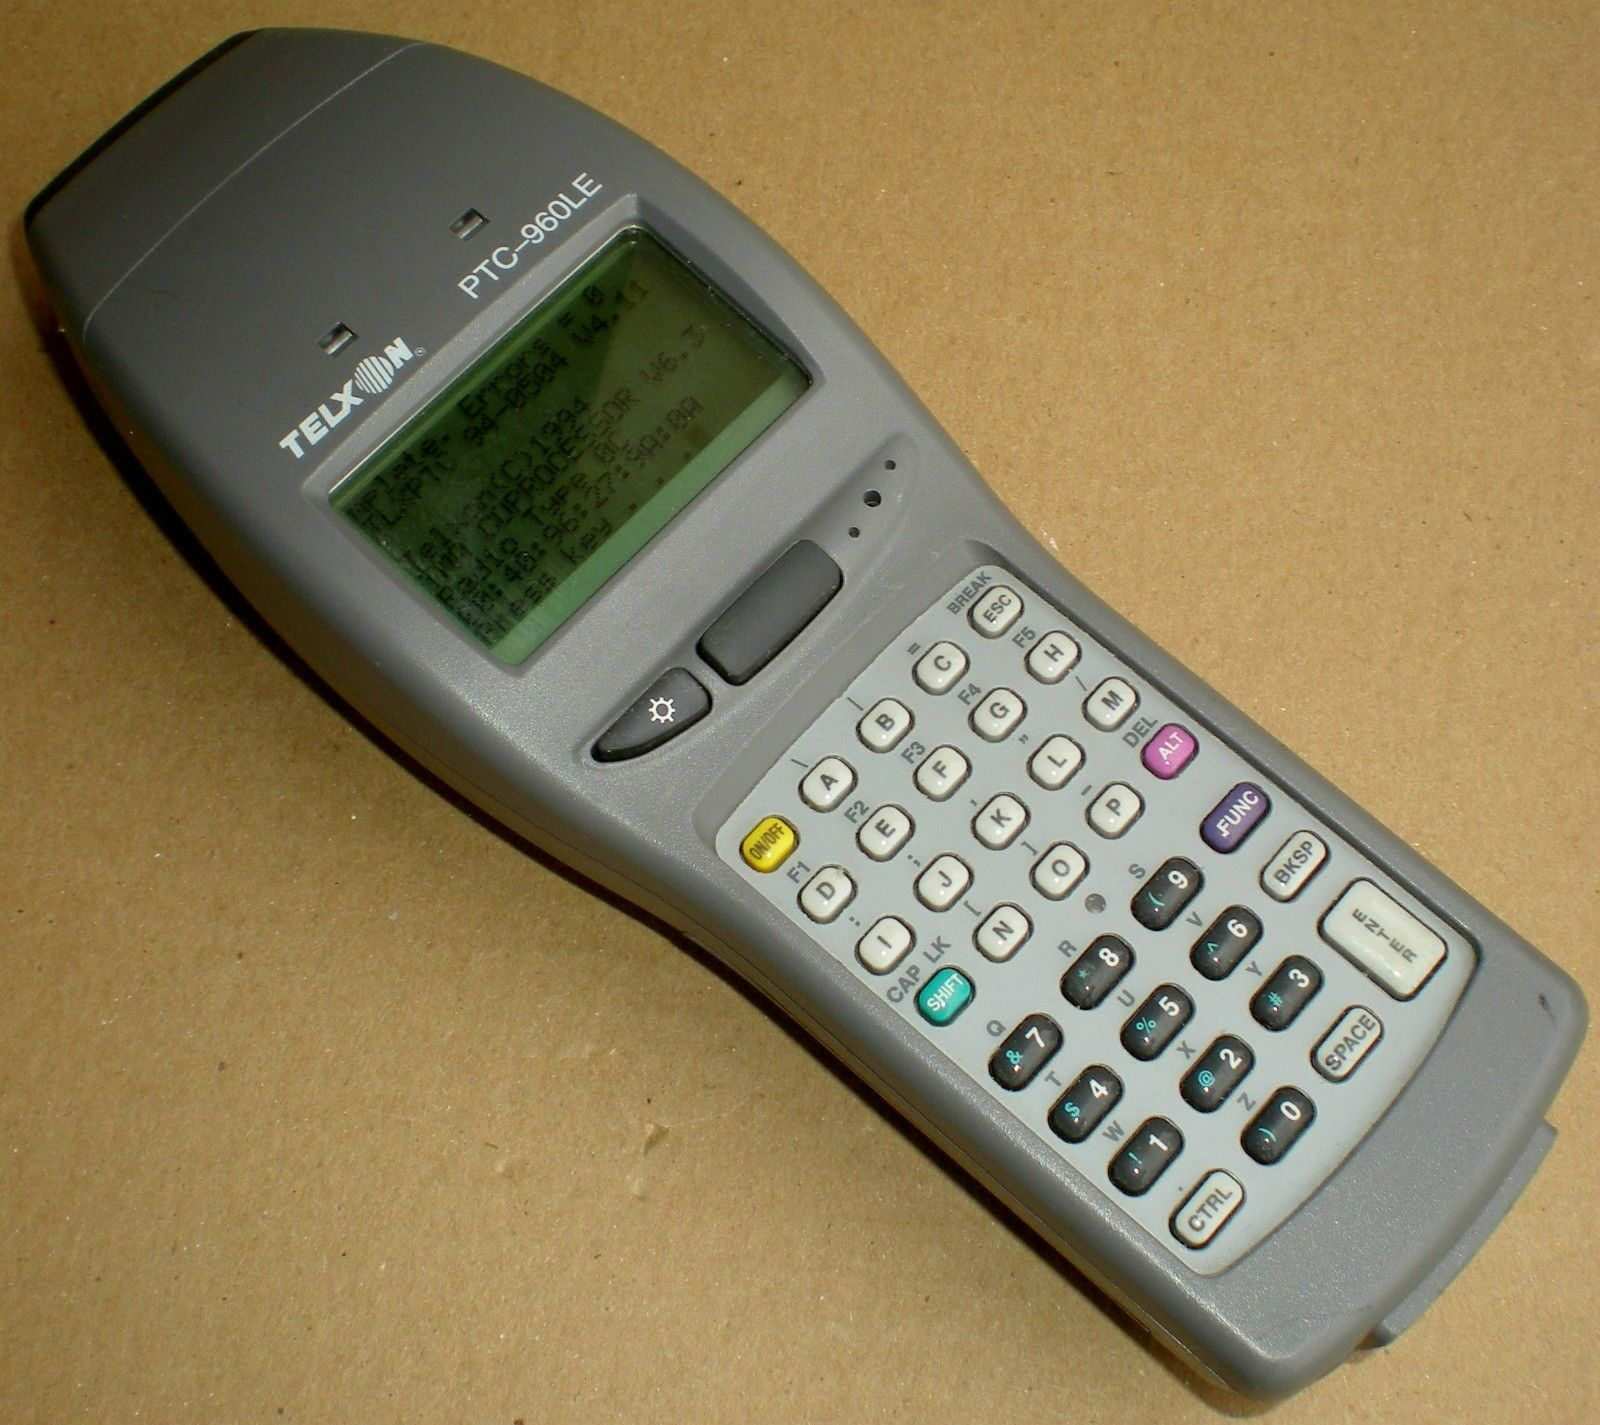 Handheld barcode scanner ptc 960le symbol technologies motorola picture 1 of 11 biocorpaavc Gallery